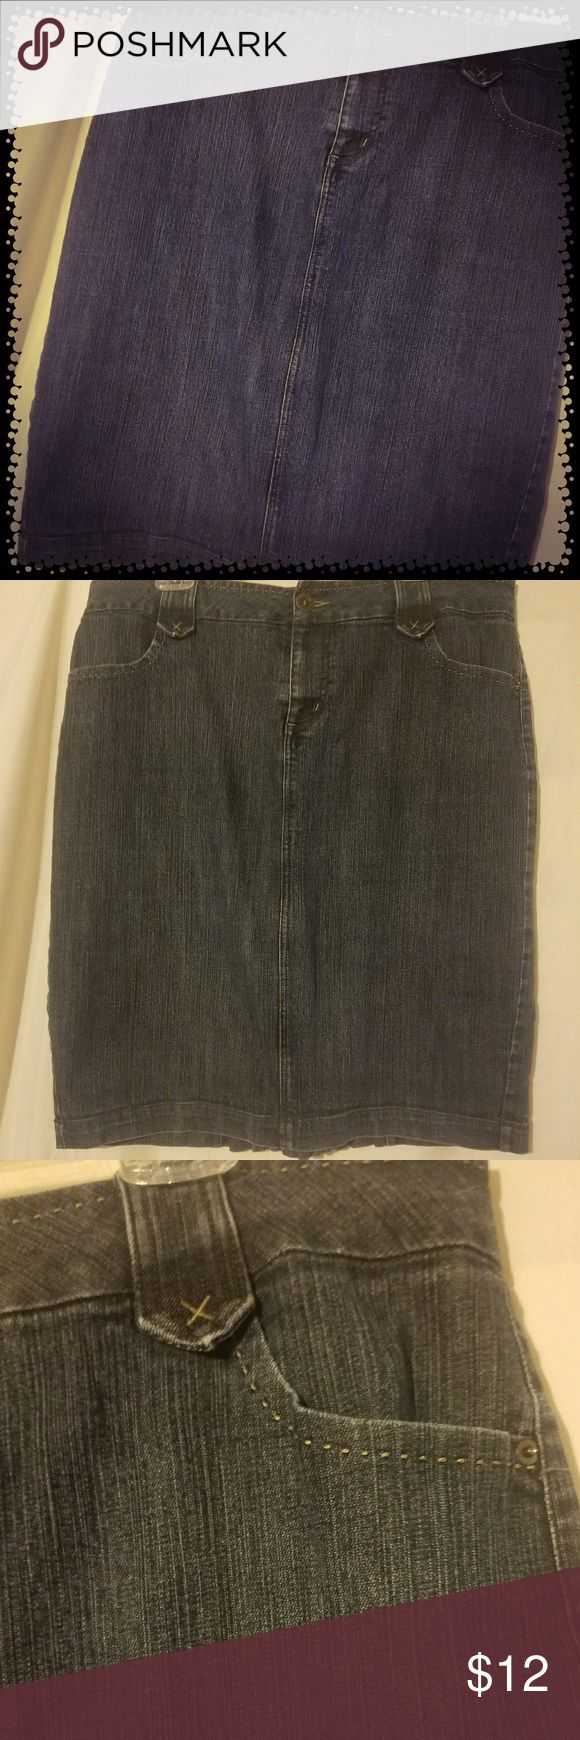 "Fashion Bug Women's Blue Jean Skirt Sz 18W Fashion Bug Women's Blue Jean Skirt Sz 18W. Has faux split in back with pleats. Length hit just bellow my knees, & I'm 5'4.5"". Fashion Bug Skirts Midi"